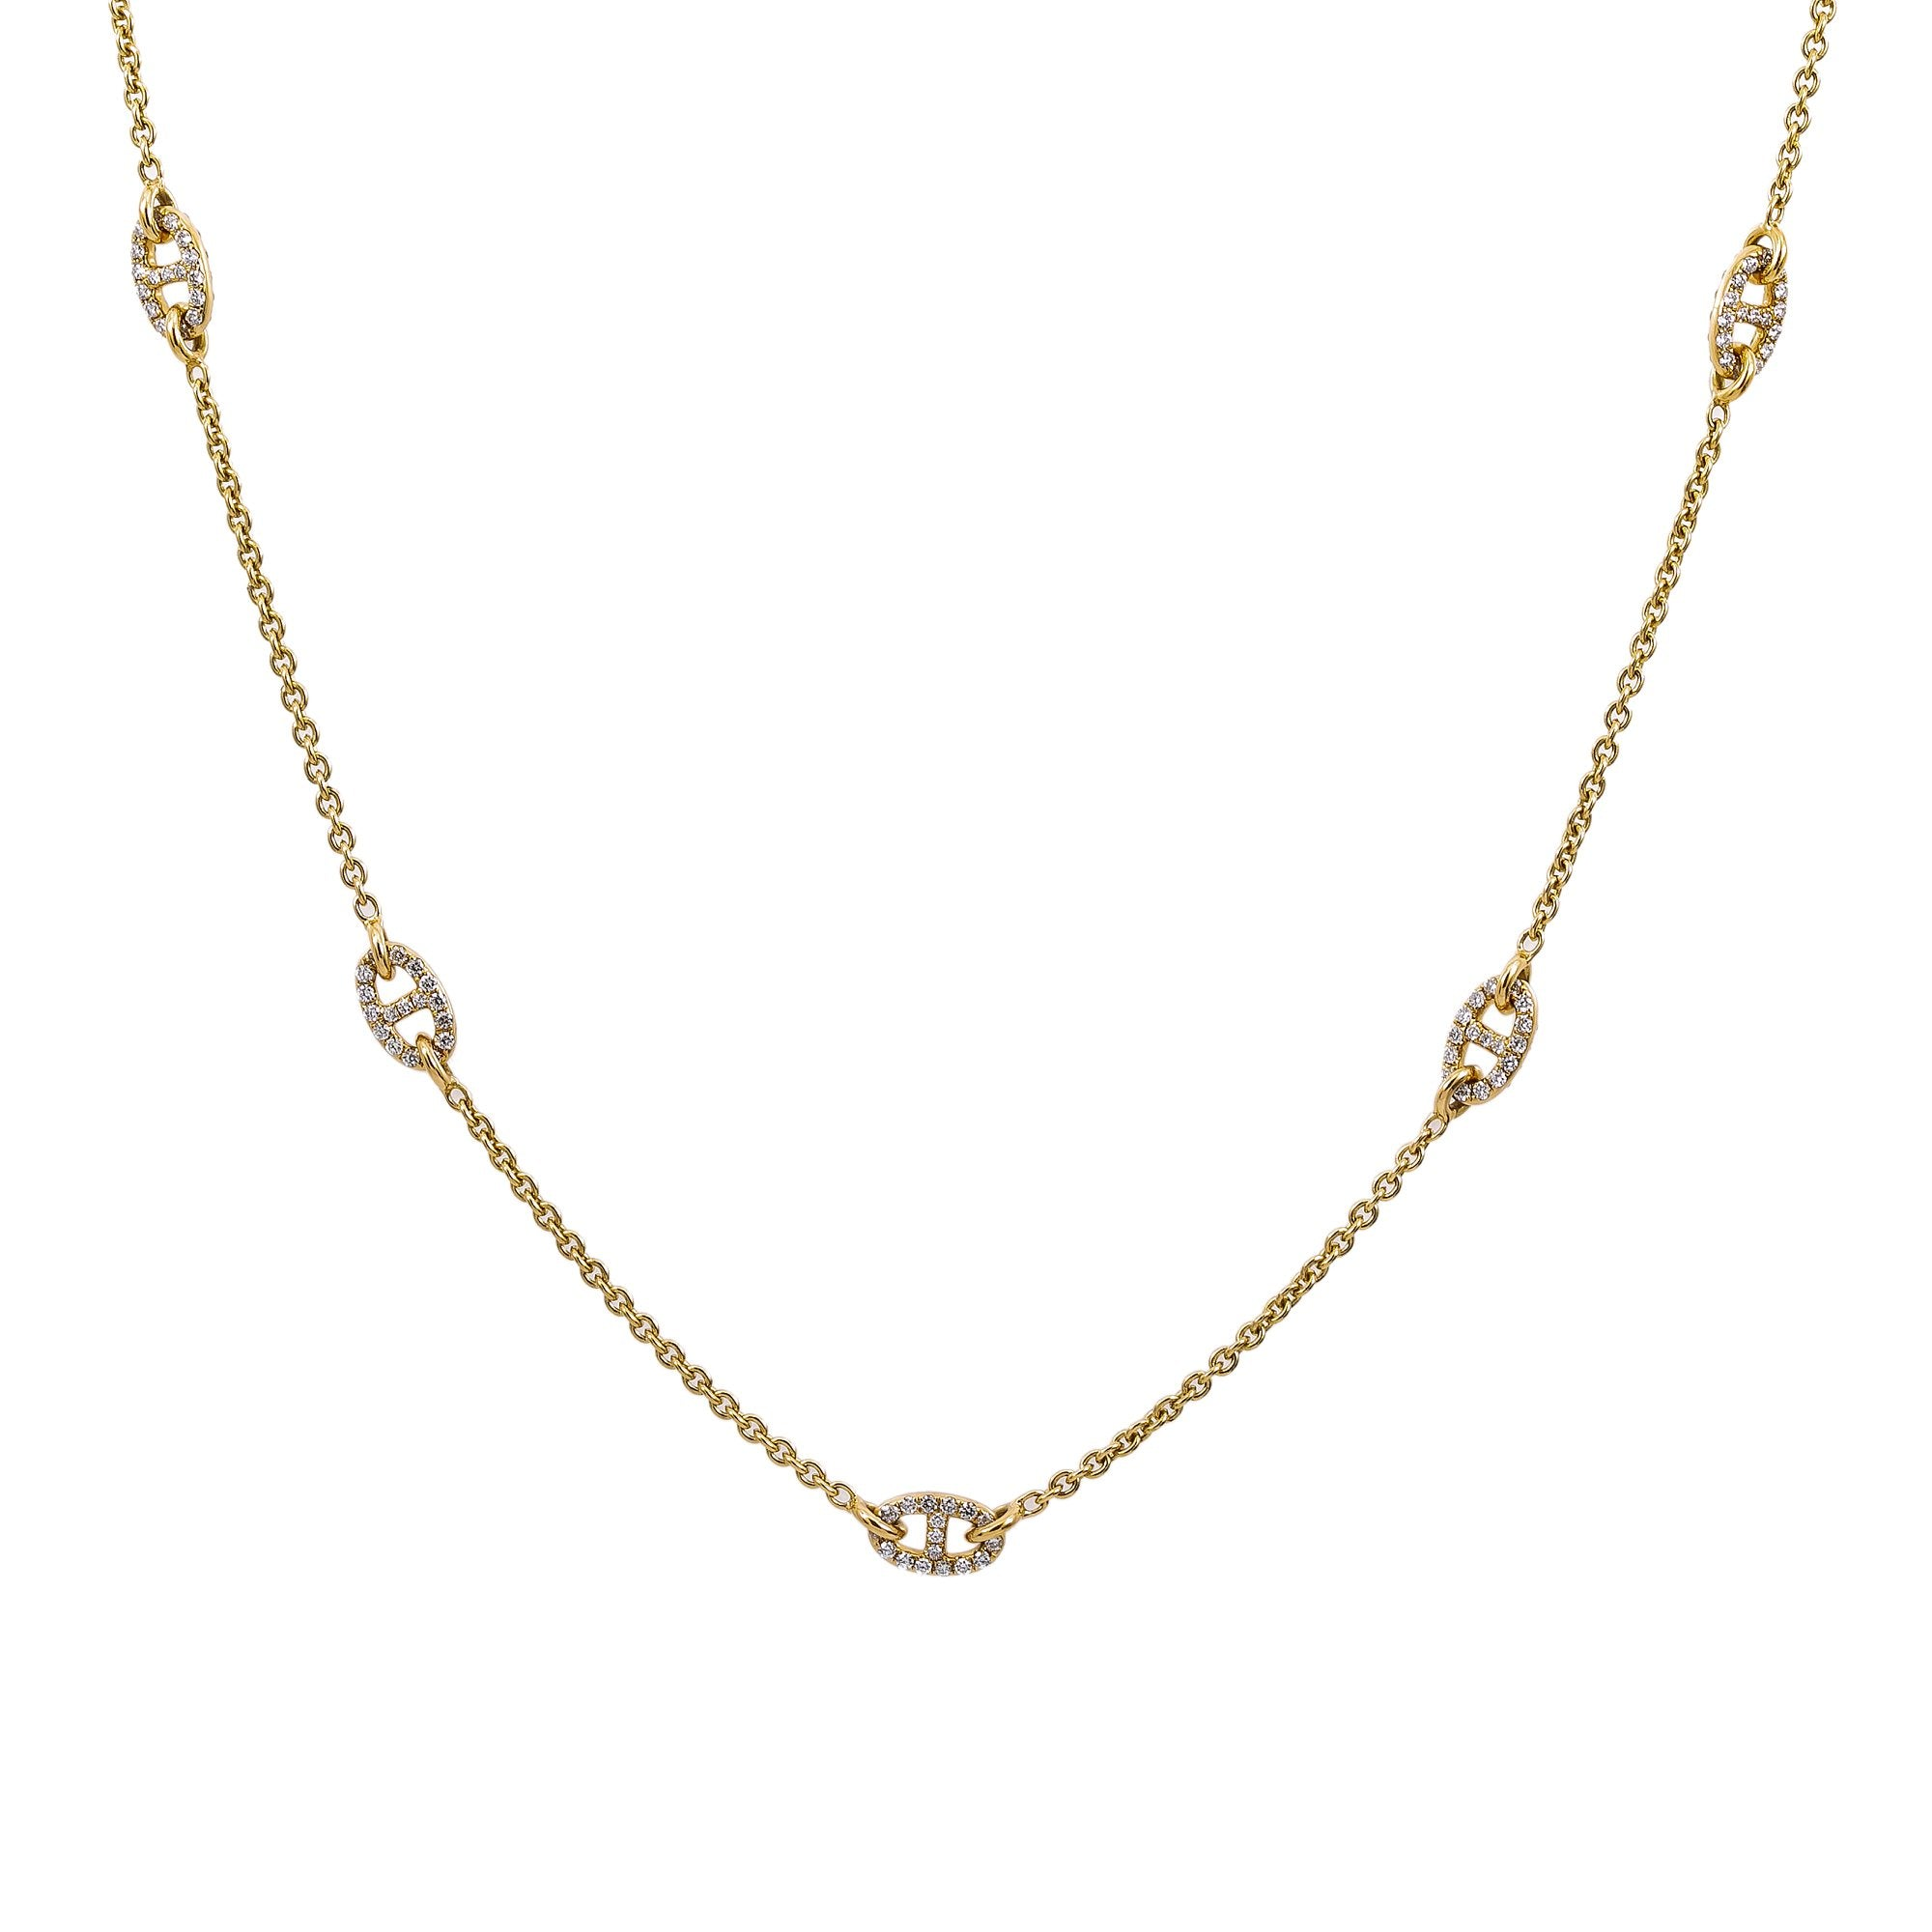 "18K Yellow Gold Women's Necklace, 18"" chain and diamonds"